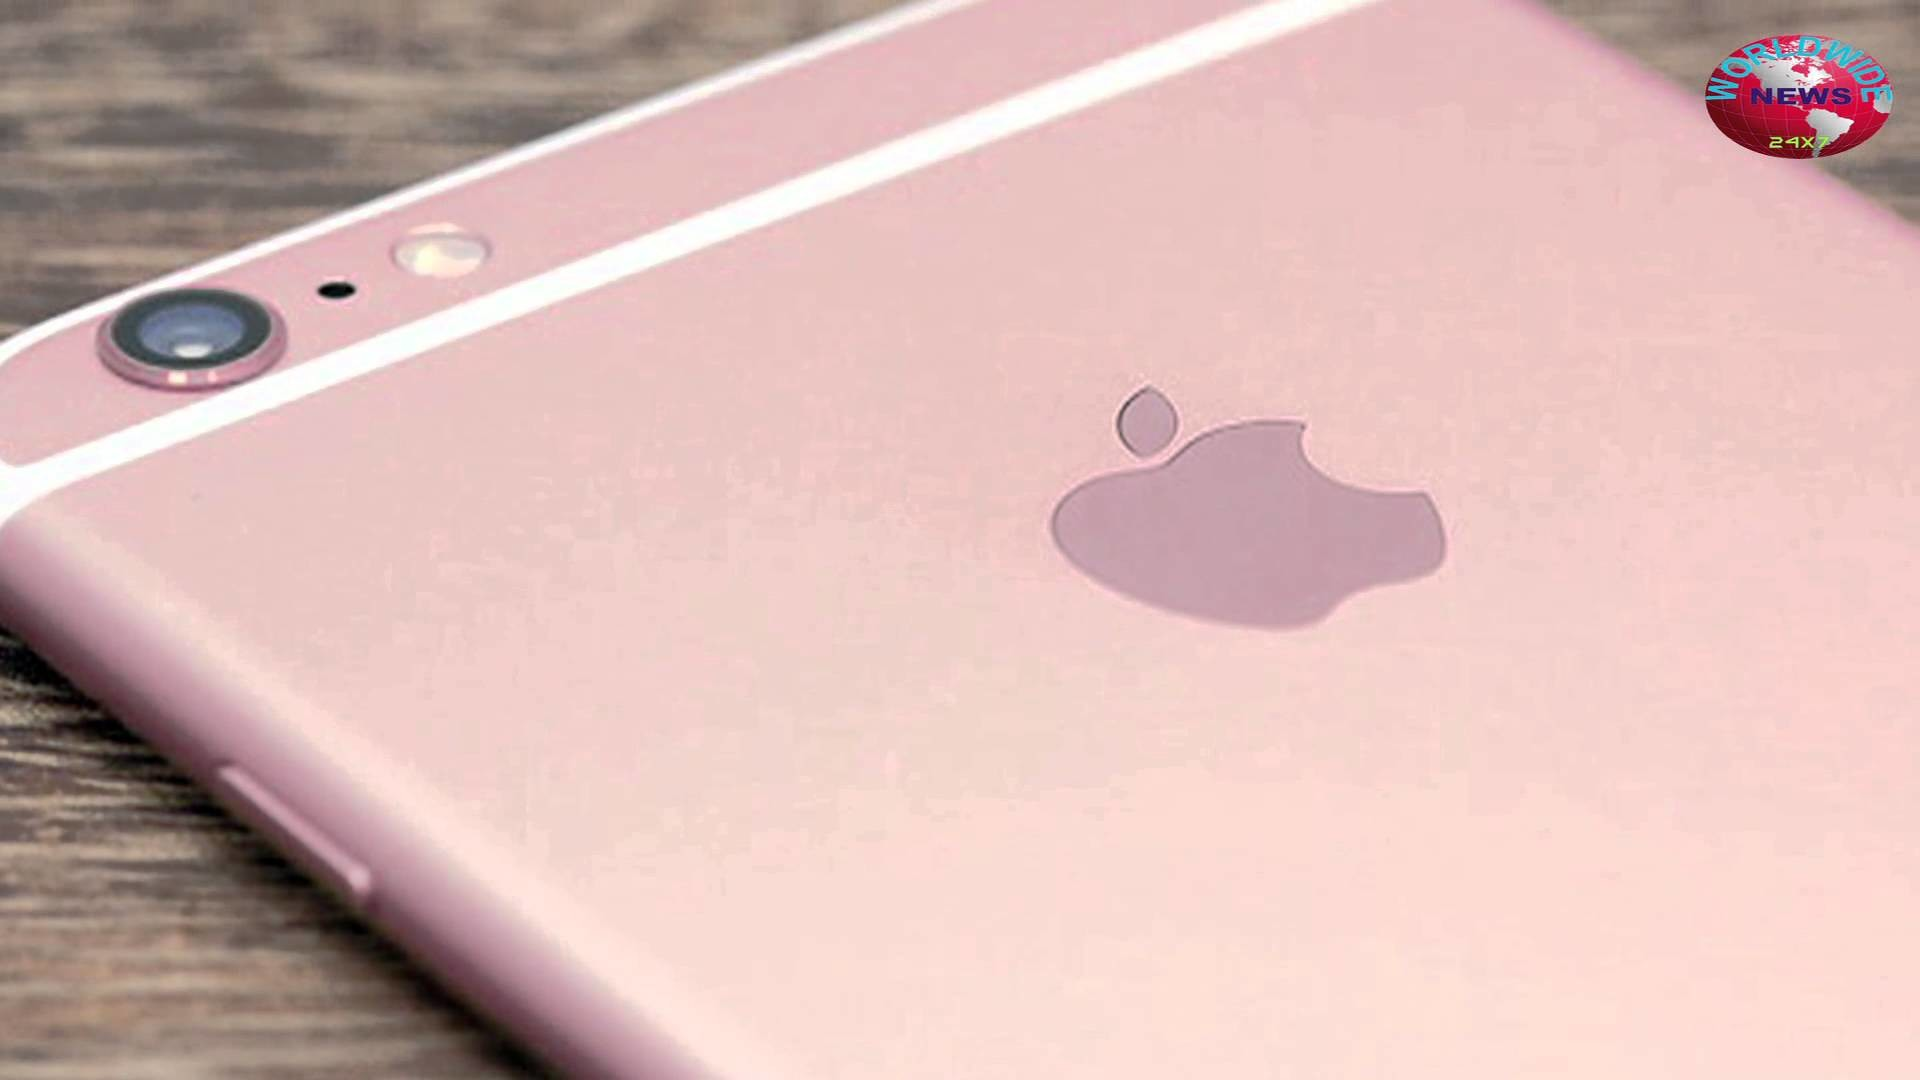 iPhone 6s Rose Gold Image Leaks; iPhone 6c Tipped Again